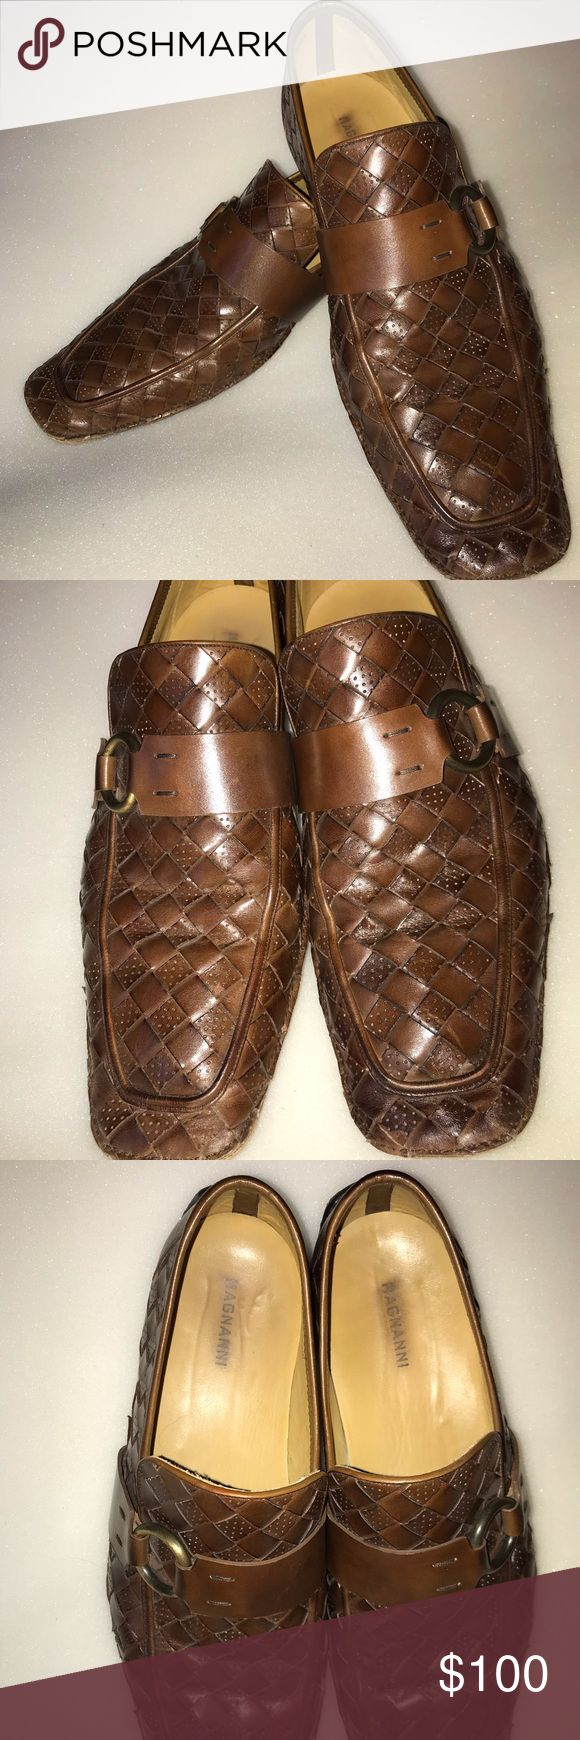 10 M Magnanni handmade Italian loafers OUTSTANDING These woven Men's size 10 m...